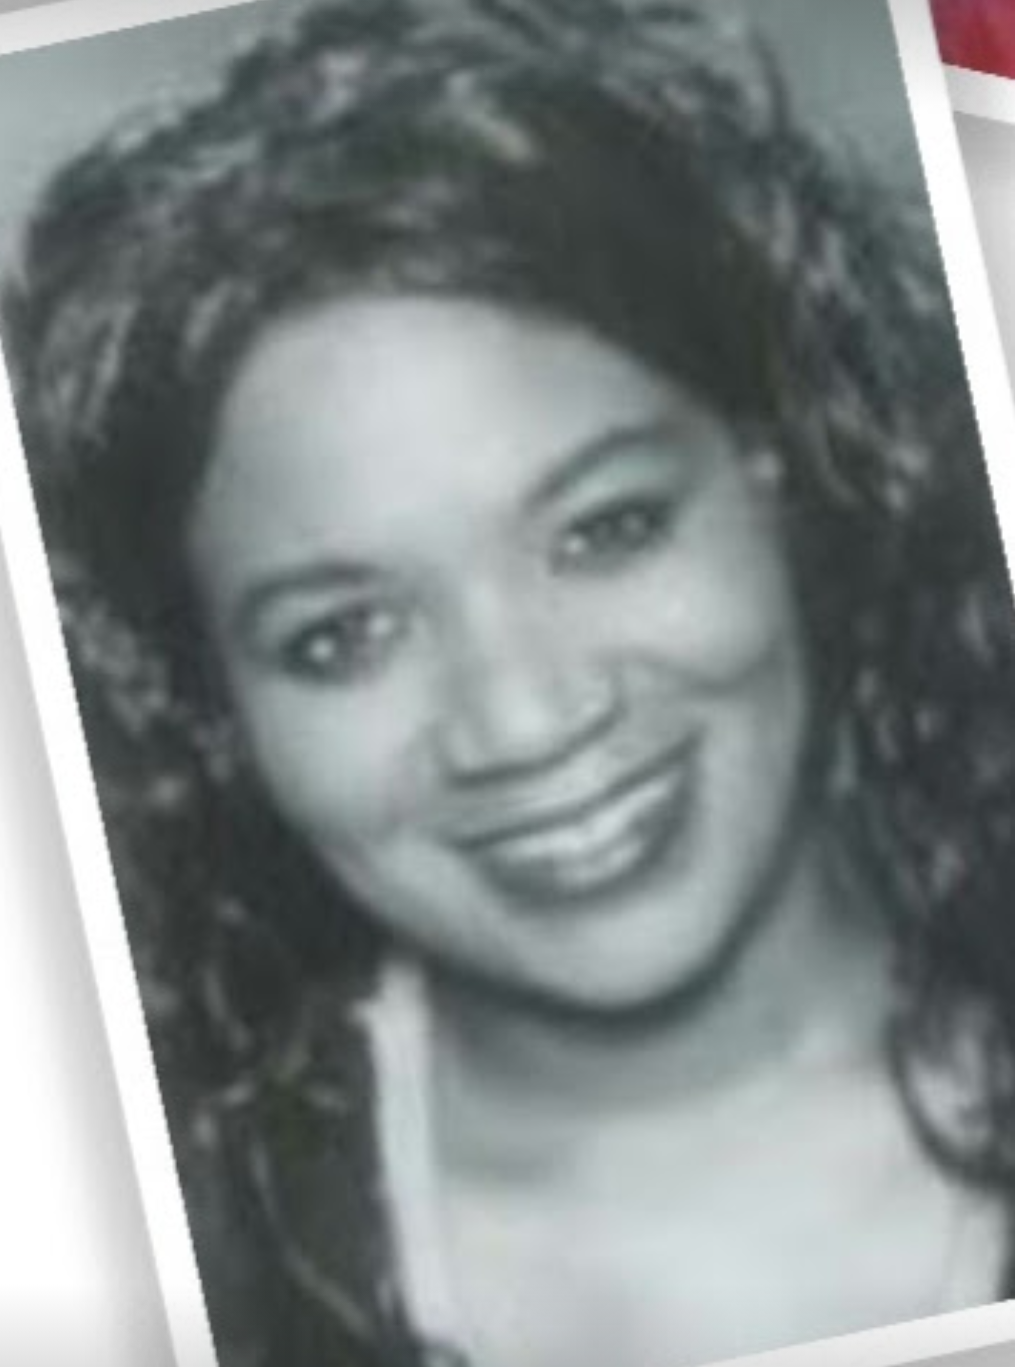 8050a17e501 Nichole Rosalyn Elaine (Rene) daughter of Flo Ballard from the Supremes.  Photo taken @ age 30. By KISS member Marvin in West Hollywood, CA